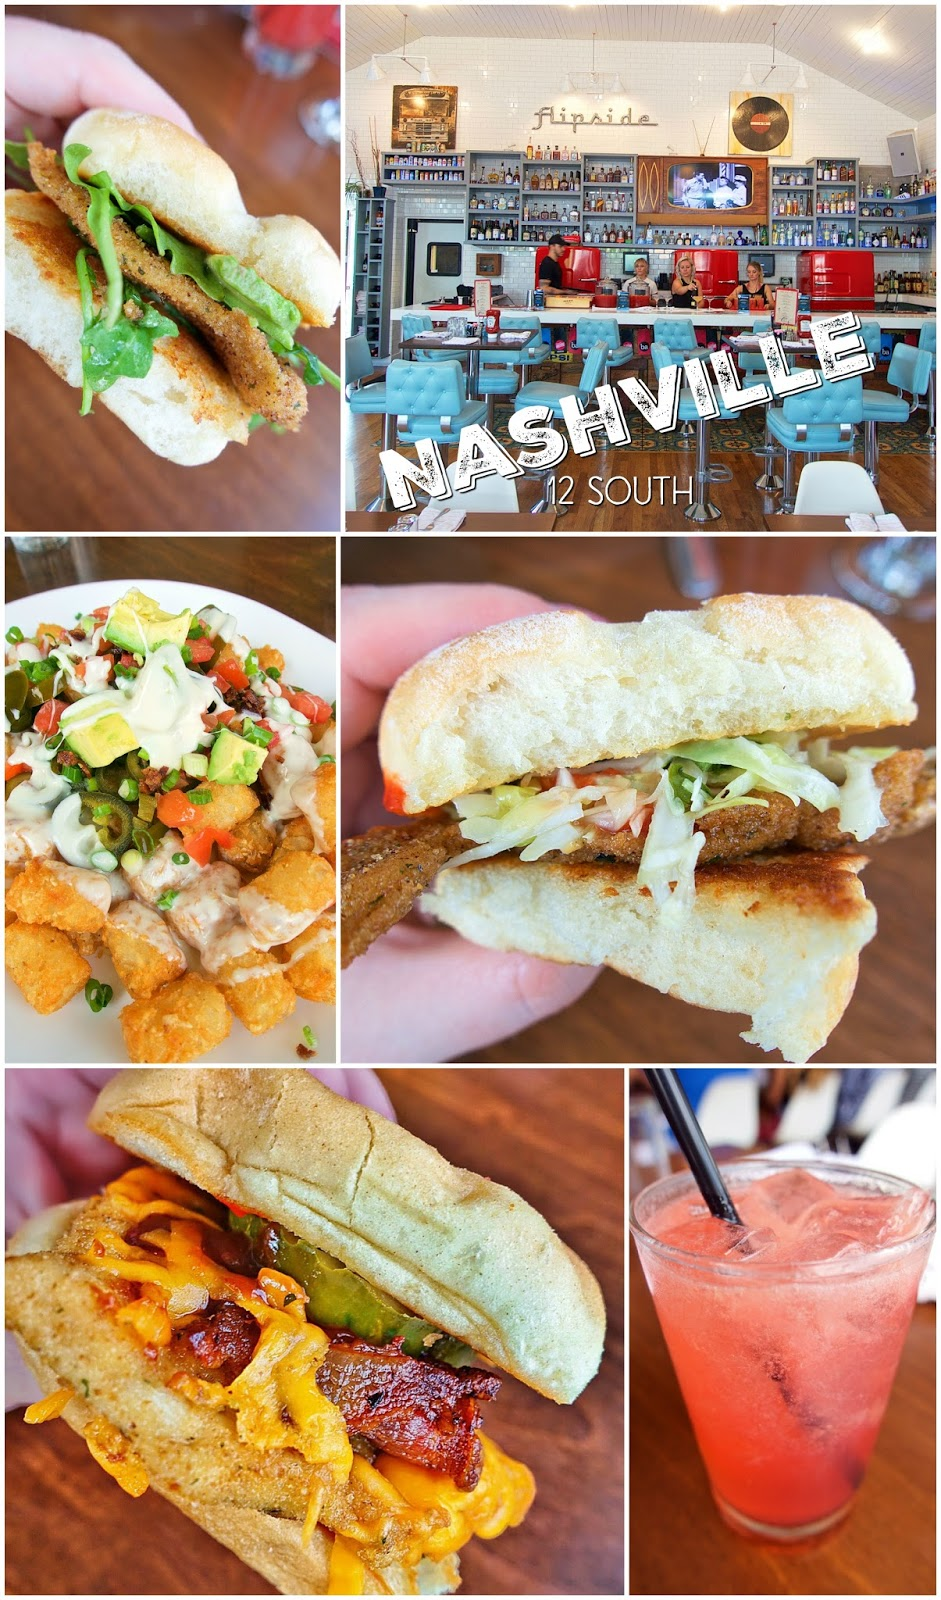 The Flipside in Nashville's 12 South neighborhood - incredible chicken sandwiches and the Tater Tot Nachos are not to be missed!